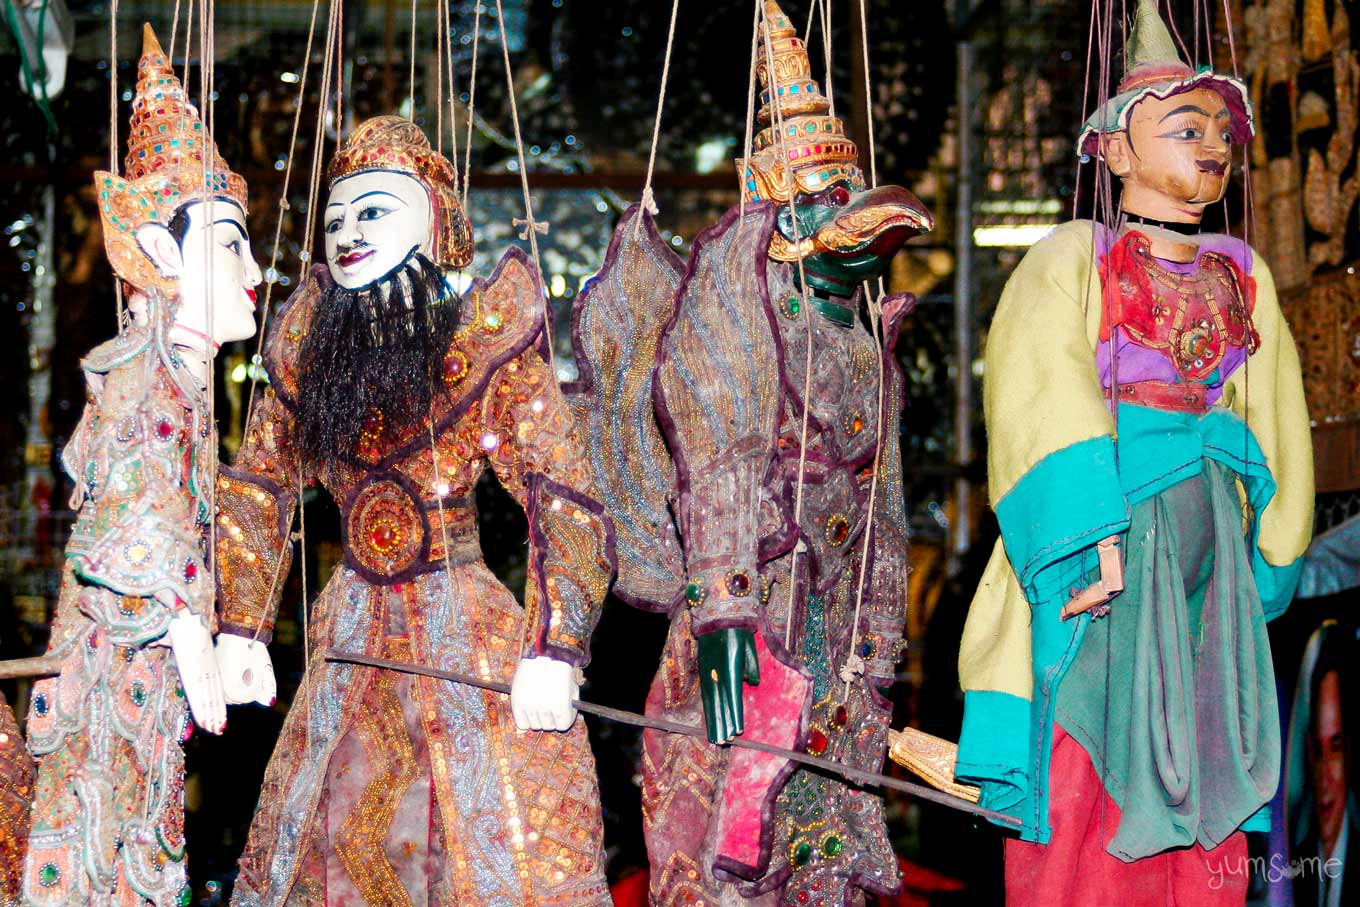 Four marionettes on a souvenir stall at the foot of Wat Doi Suthep.